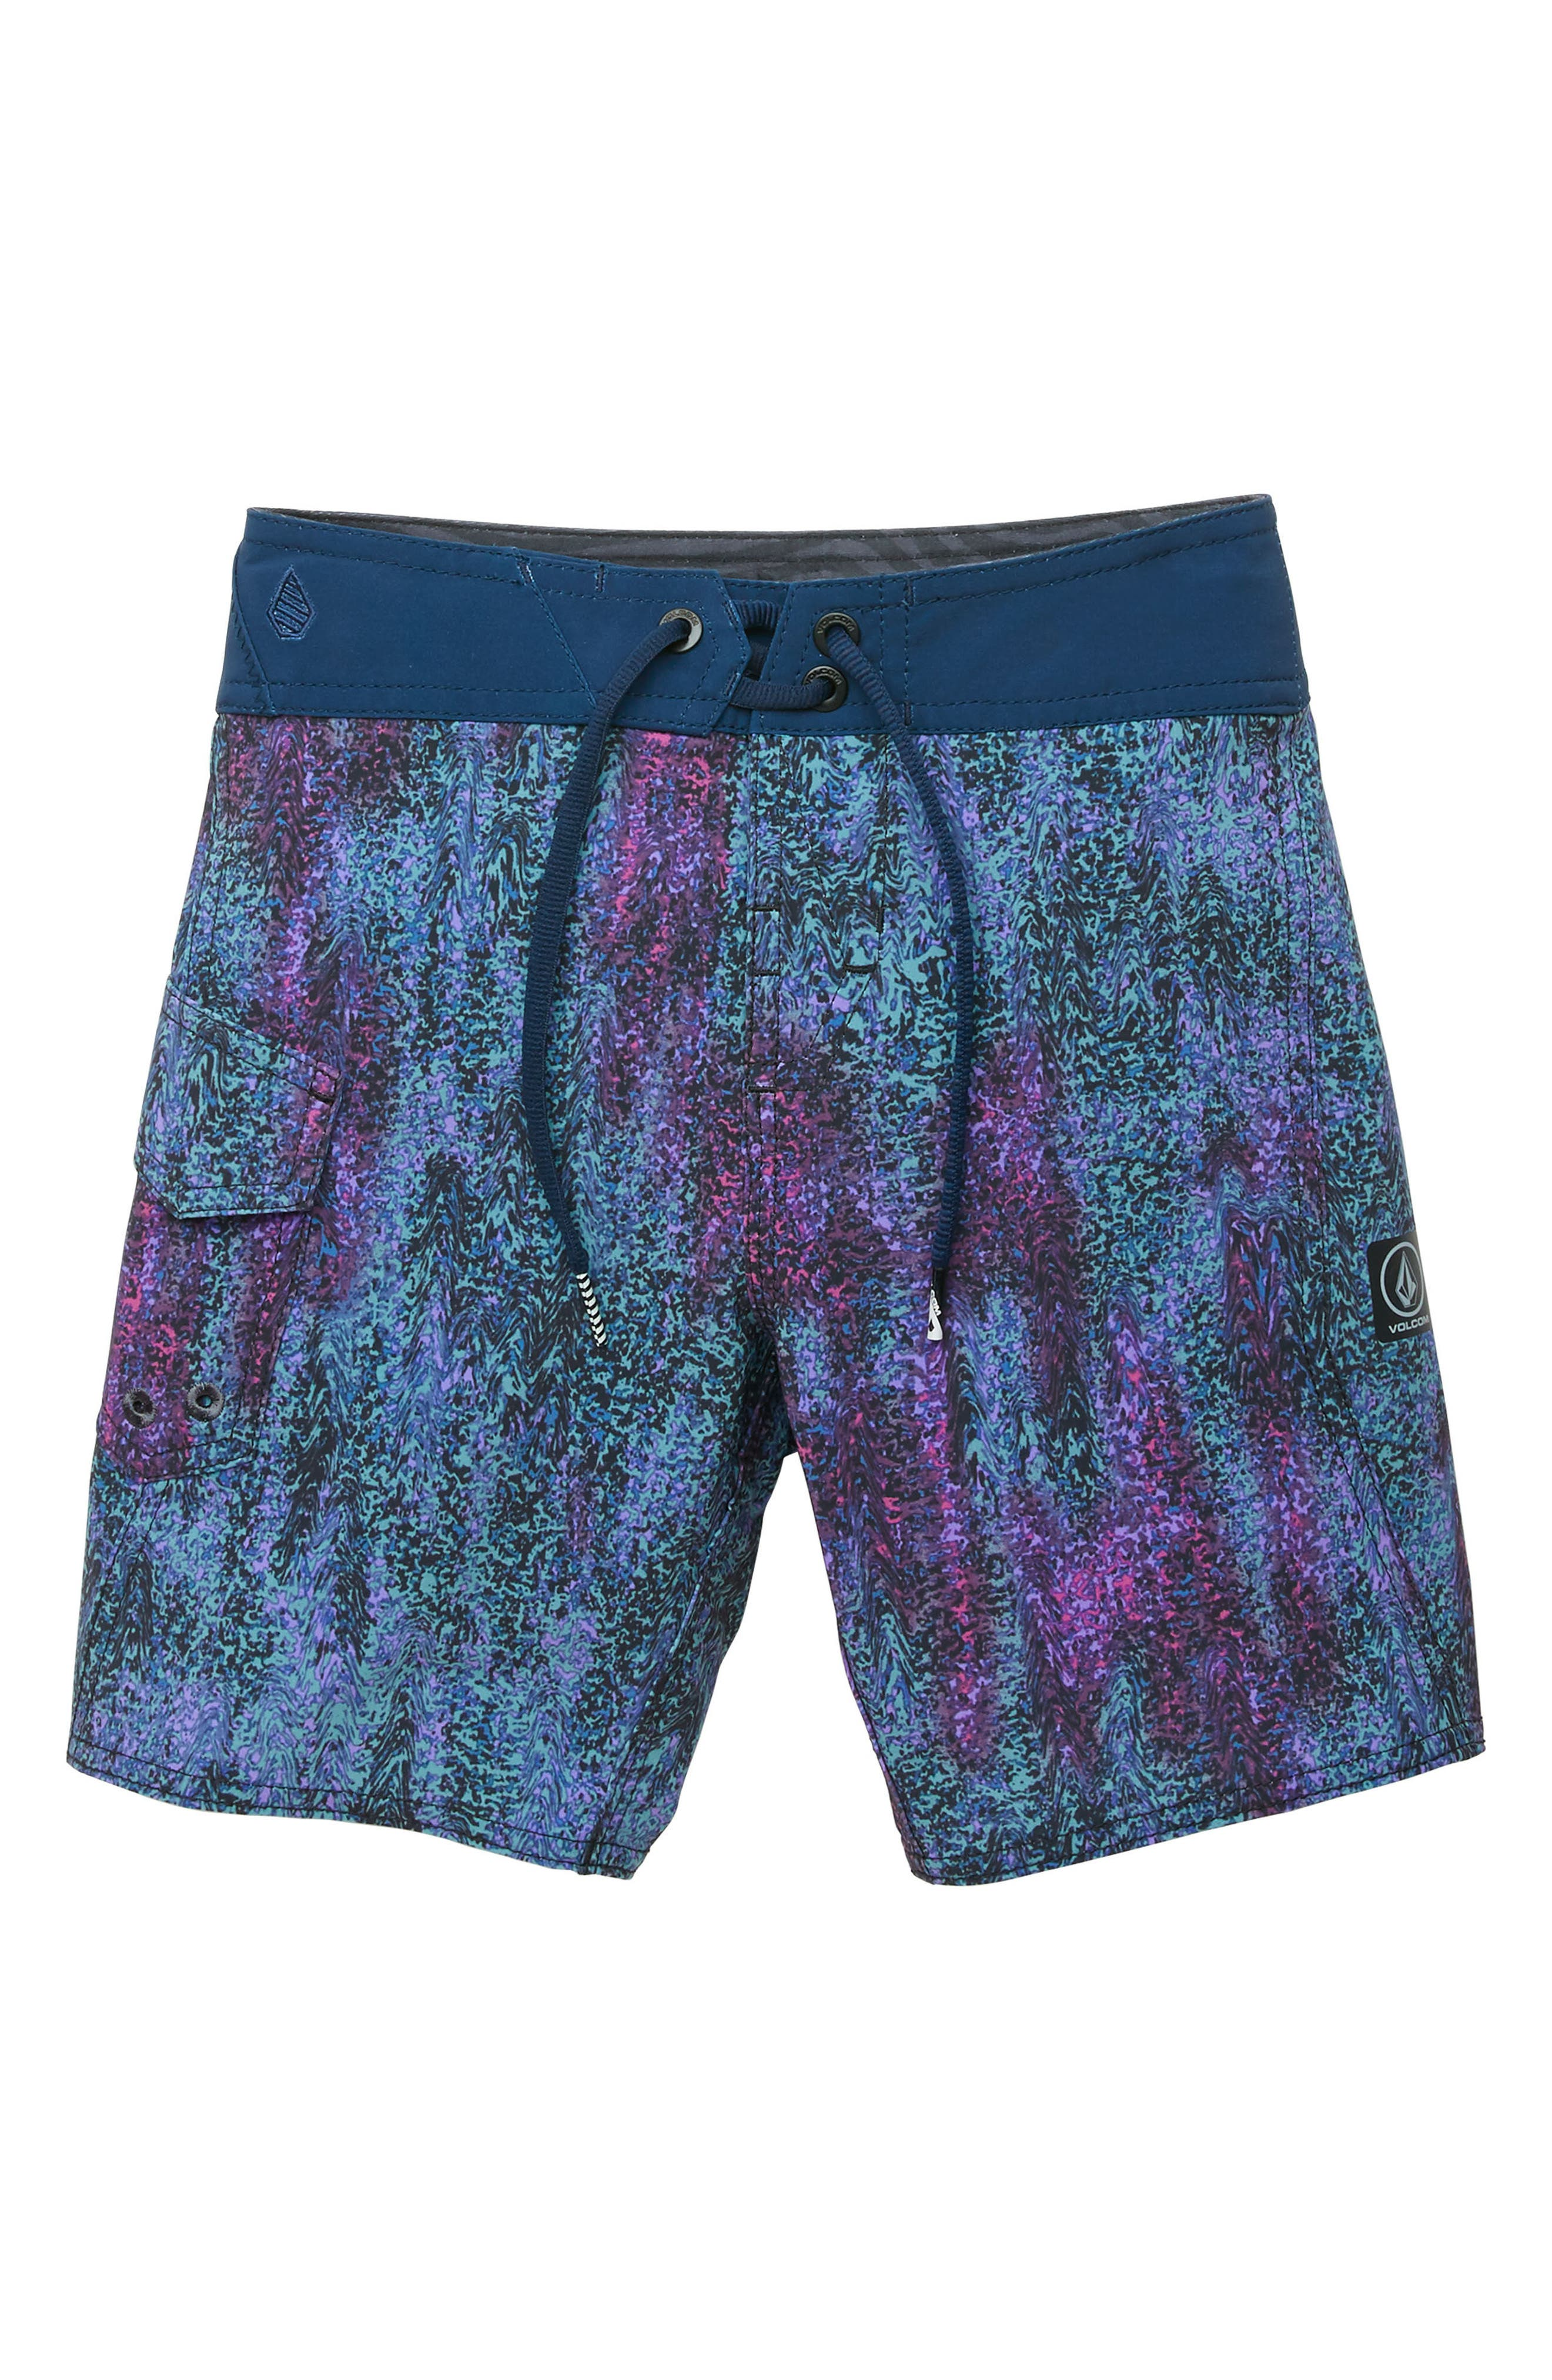 Plasm Mod Board Shorts,                         Main,                         color, 405